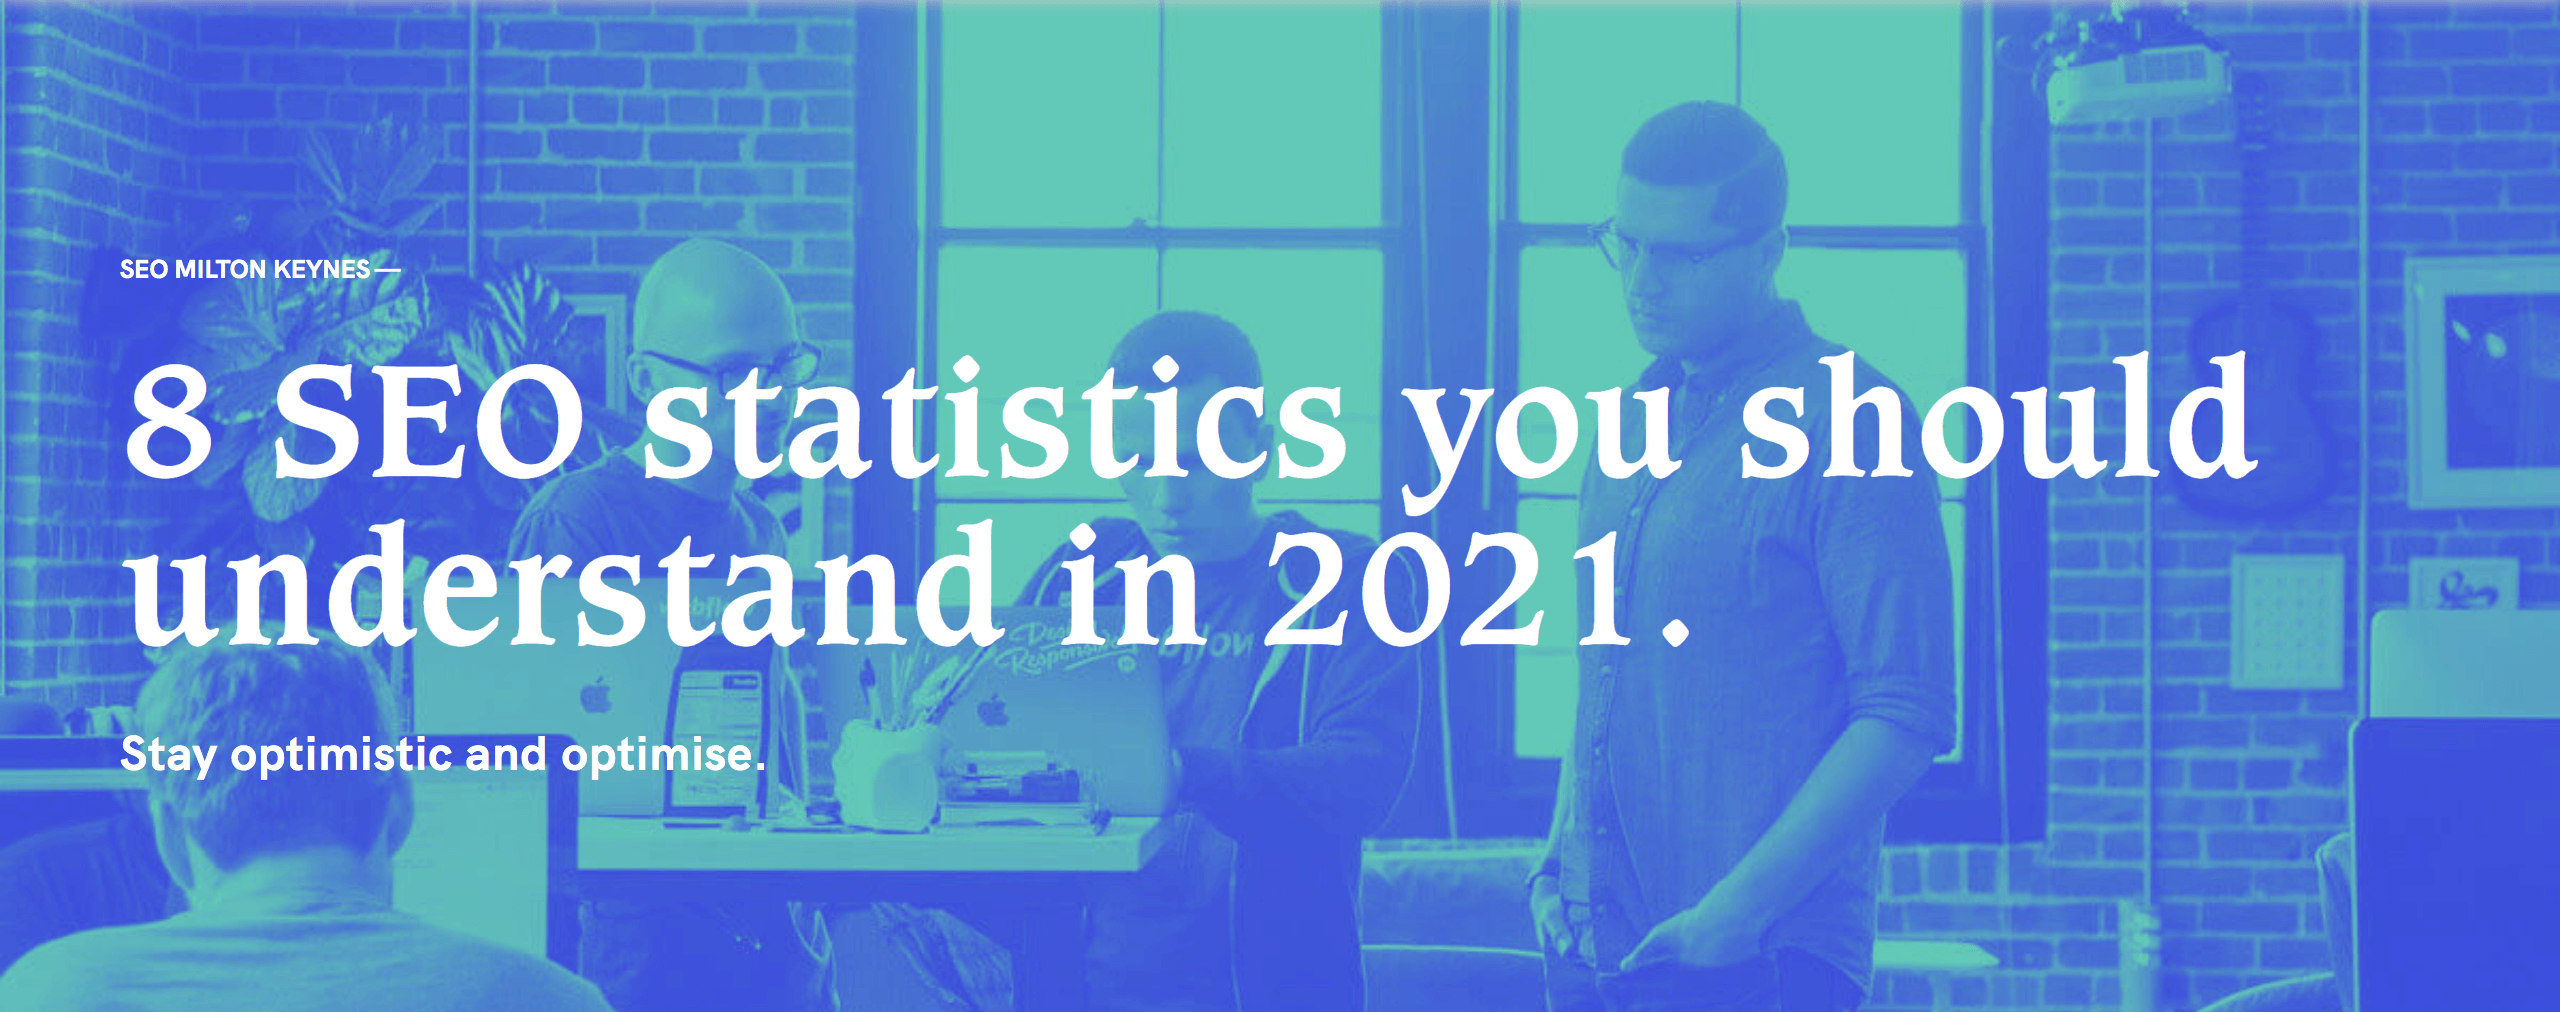 8 SEO statistics you need to understand in 2021